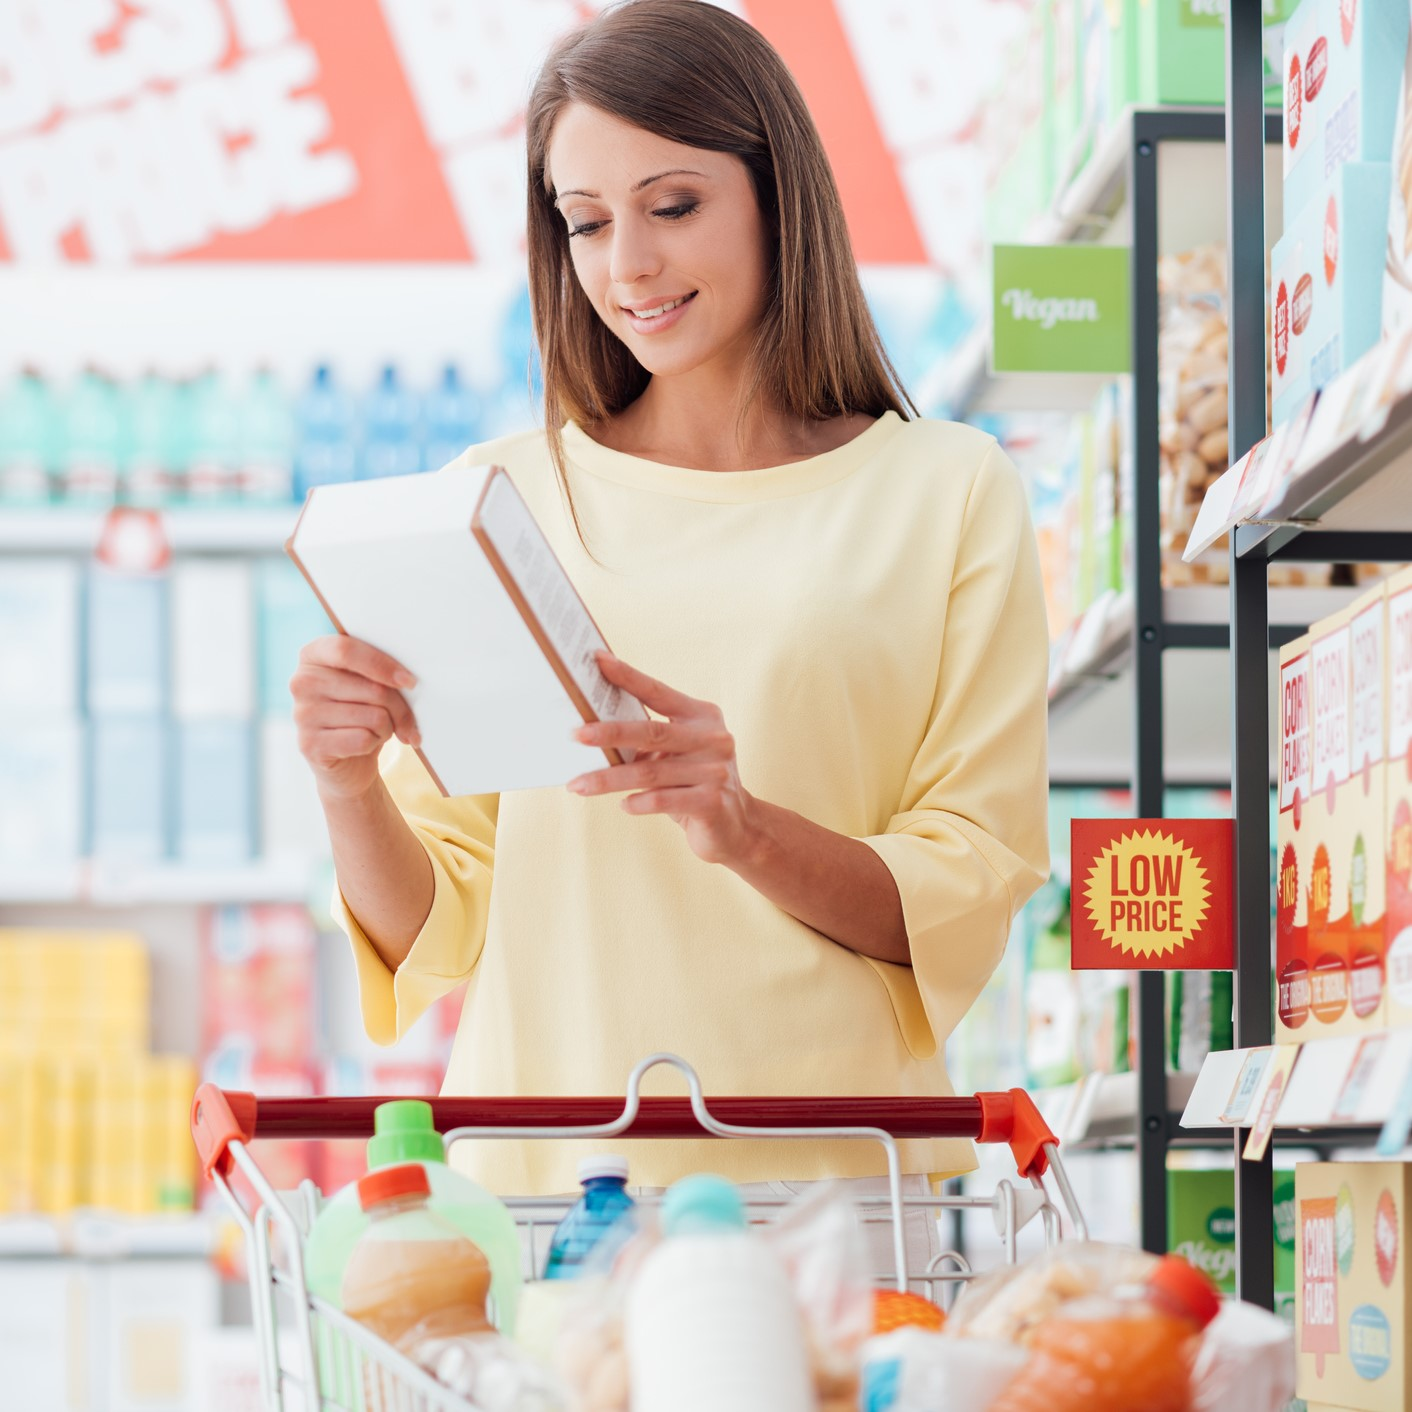 Woman reading food labels